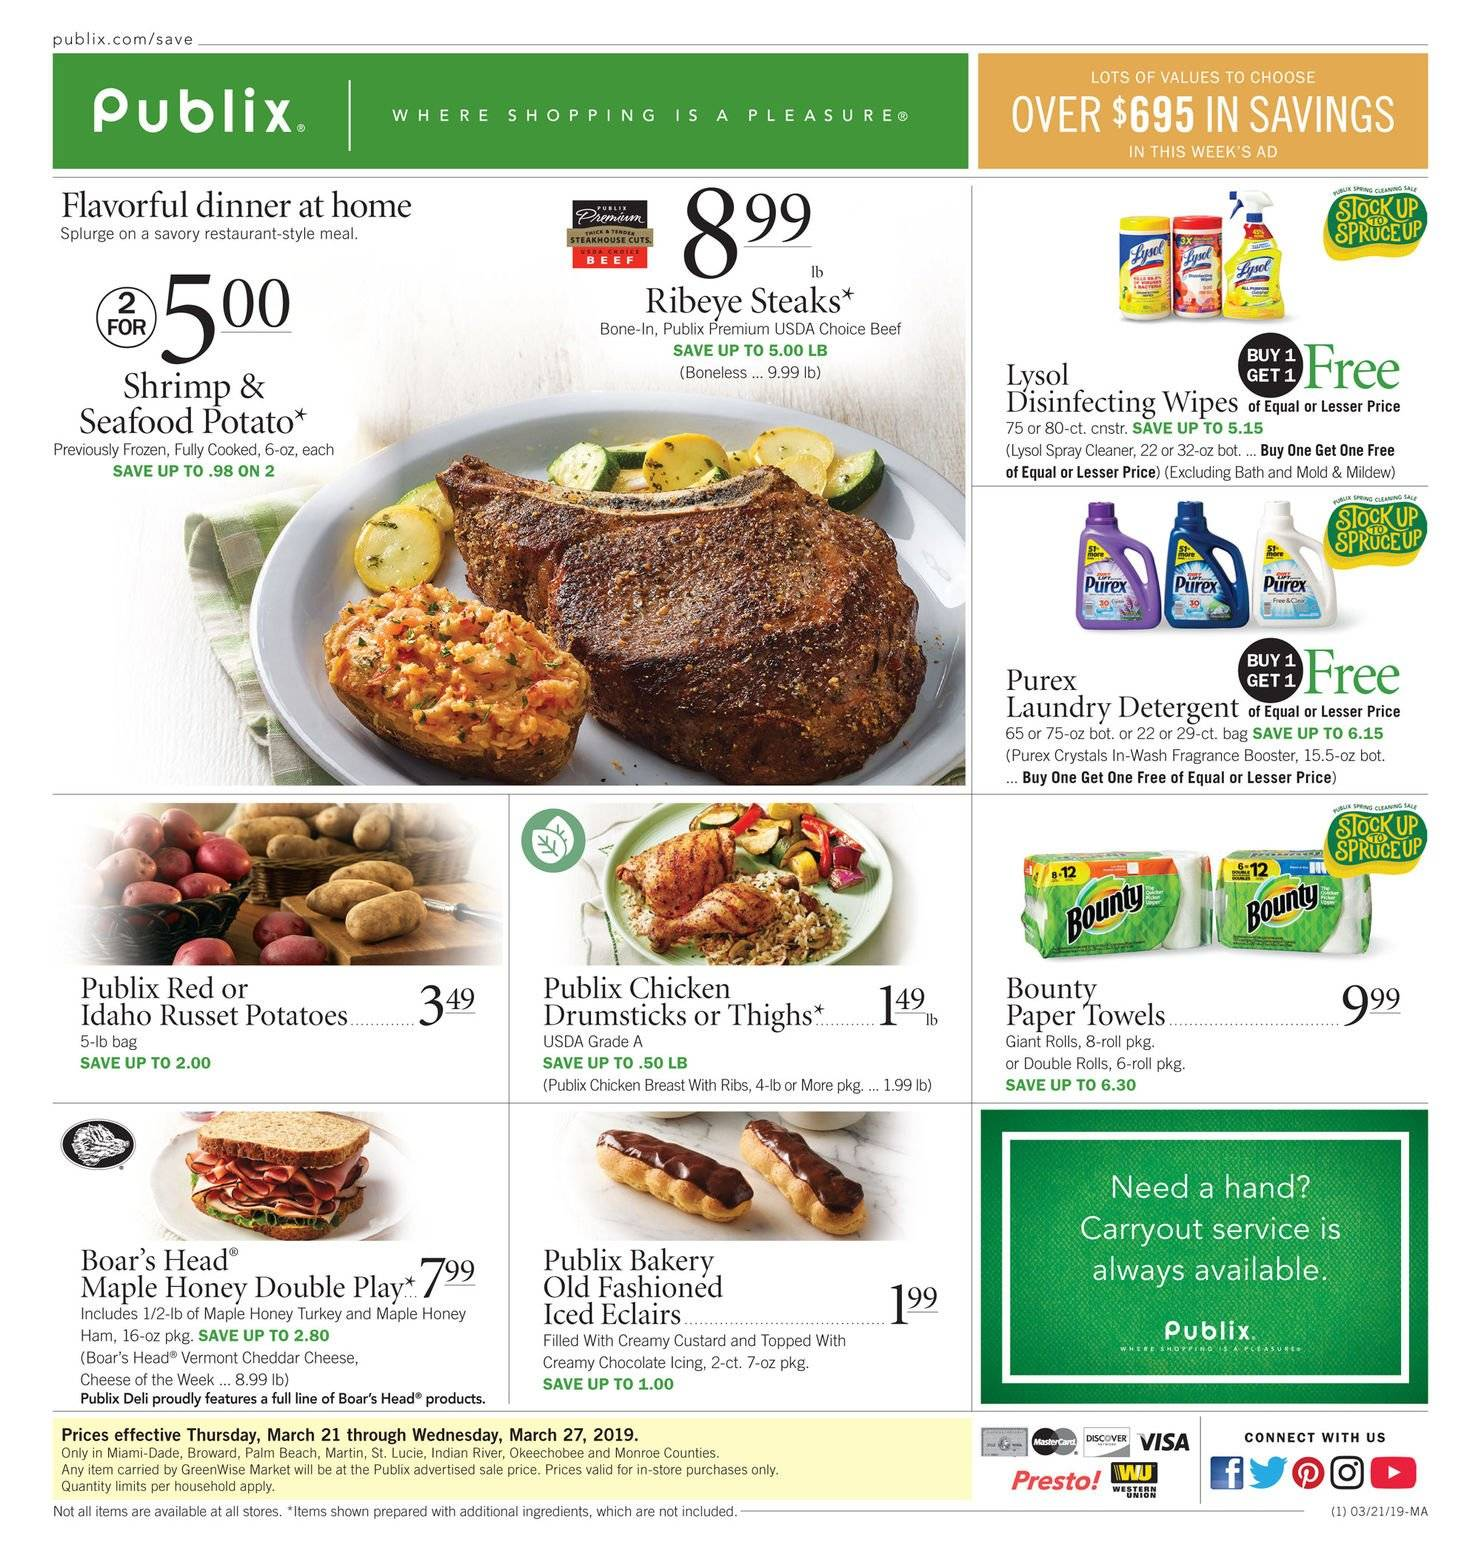 Publix Flyer - 03.21.2019 - 03.27.2019 - Sales products - seafood, shrimps, ham, cheddar, cheese, chocolate, turkey, chicken, chicken breasts, chicken drumsticks, chicken meat, kitchen towels, paper towels, detergent, wipes, cleaner, laundry detergent, Purex, fragrance. Page 1.